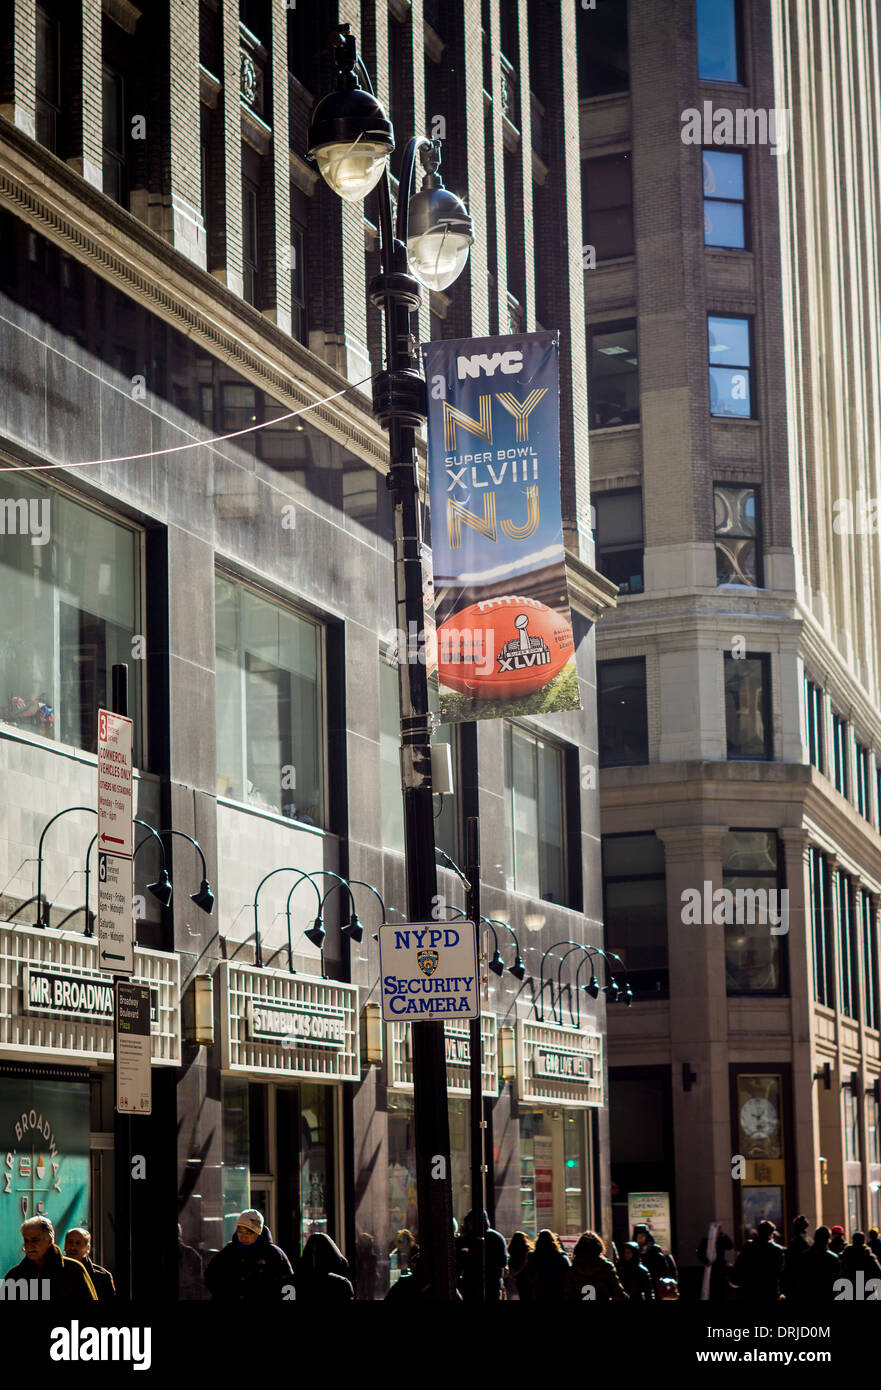 Super Bowl Boulevard is readied, with a surveillance camera